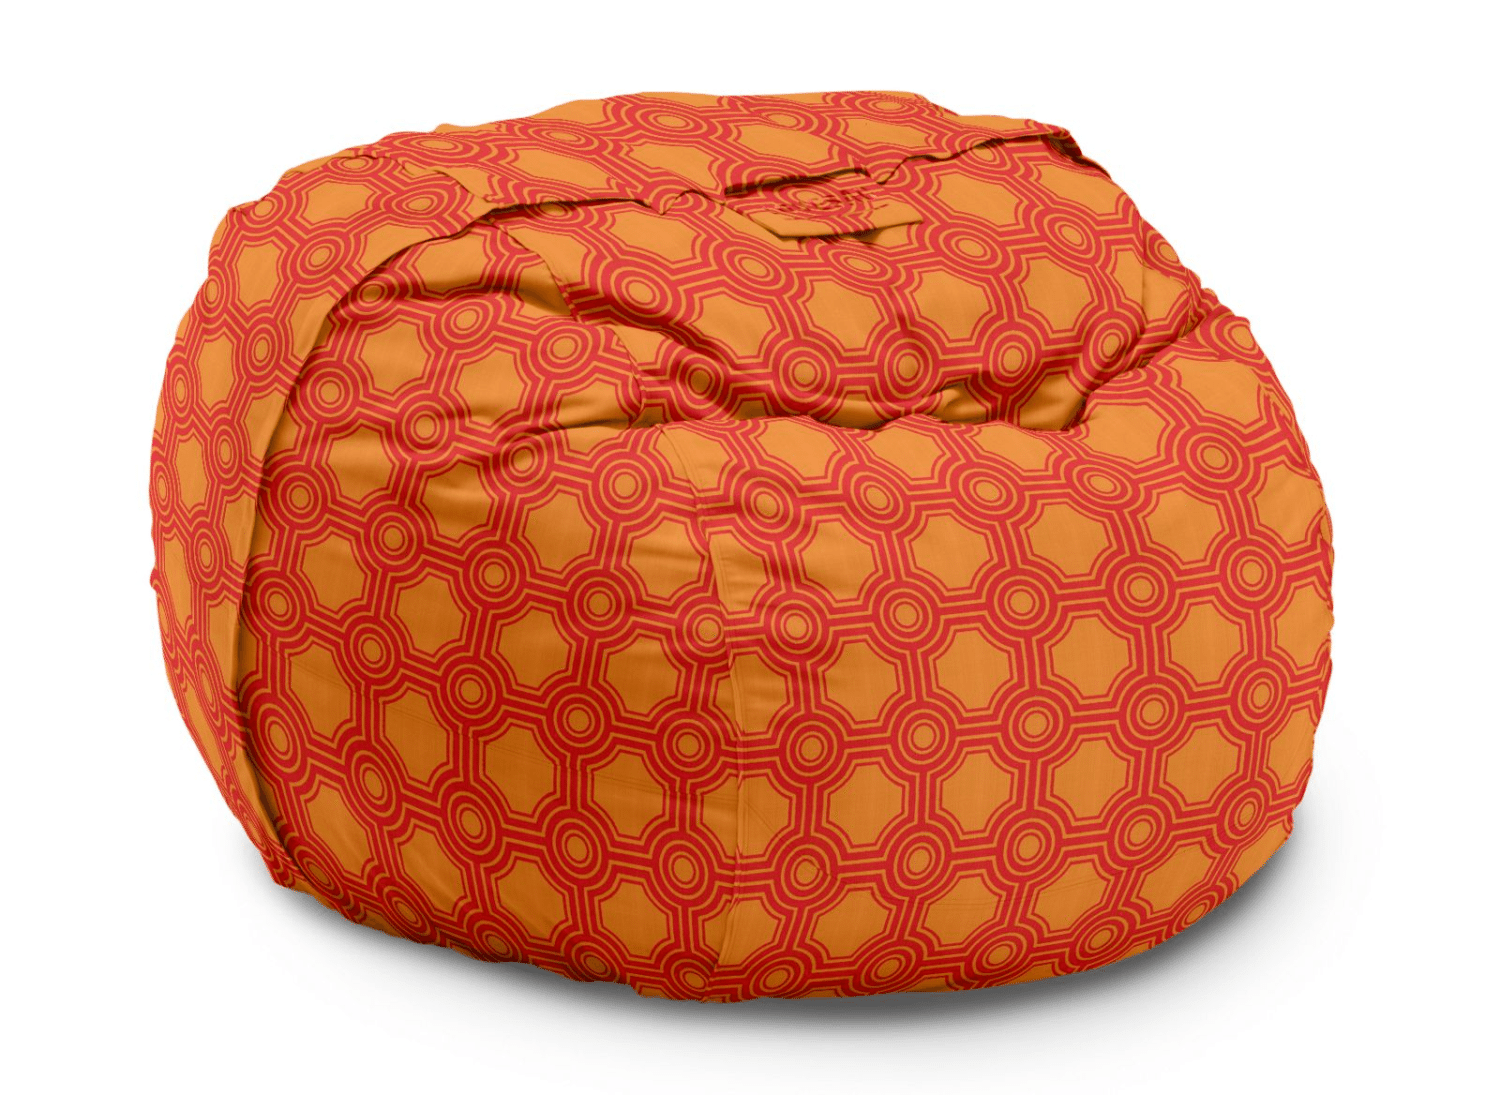 Ll Bean Bean Bag Chair Big One Lovesac Pillow Is All You Need To Relax Simplemost